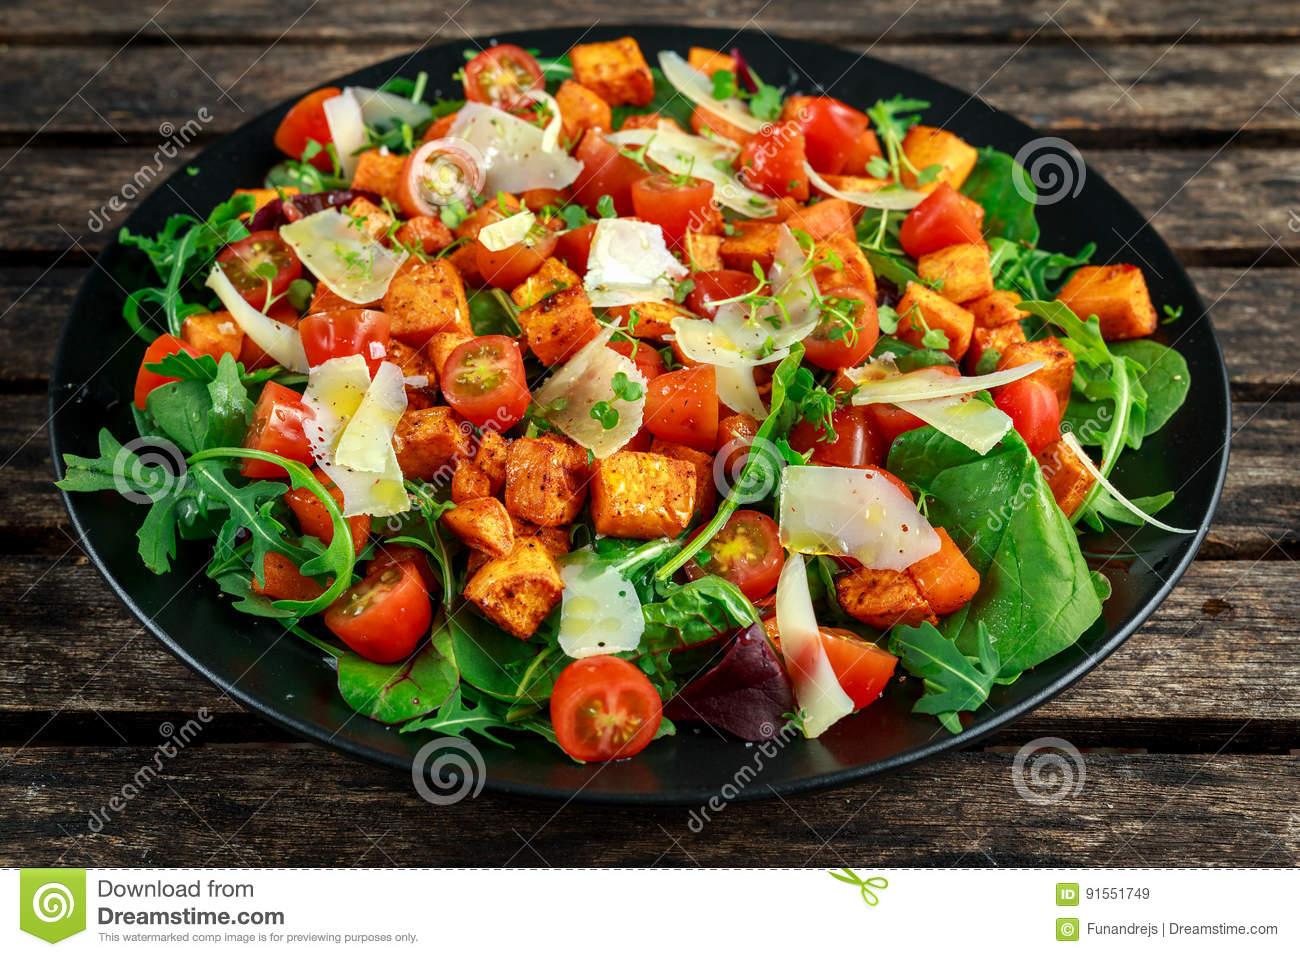 Sweet potato, carrots, cherry tomatoes and wild rocket salad with feta cheese served in black plate